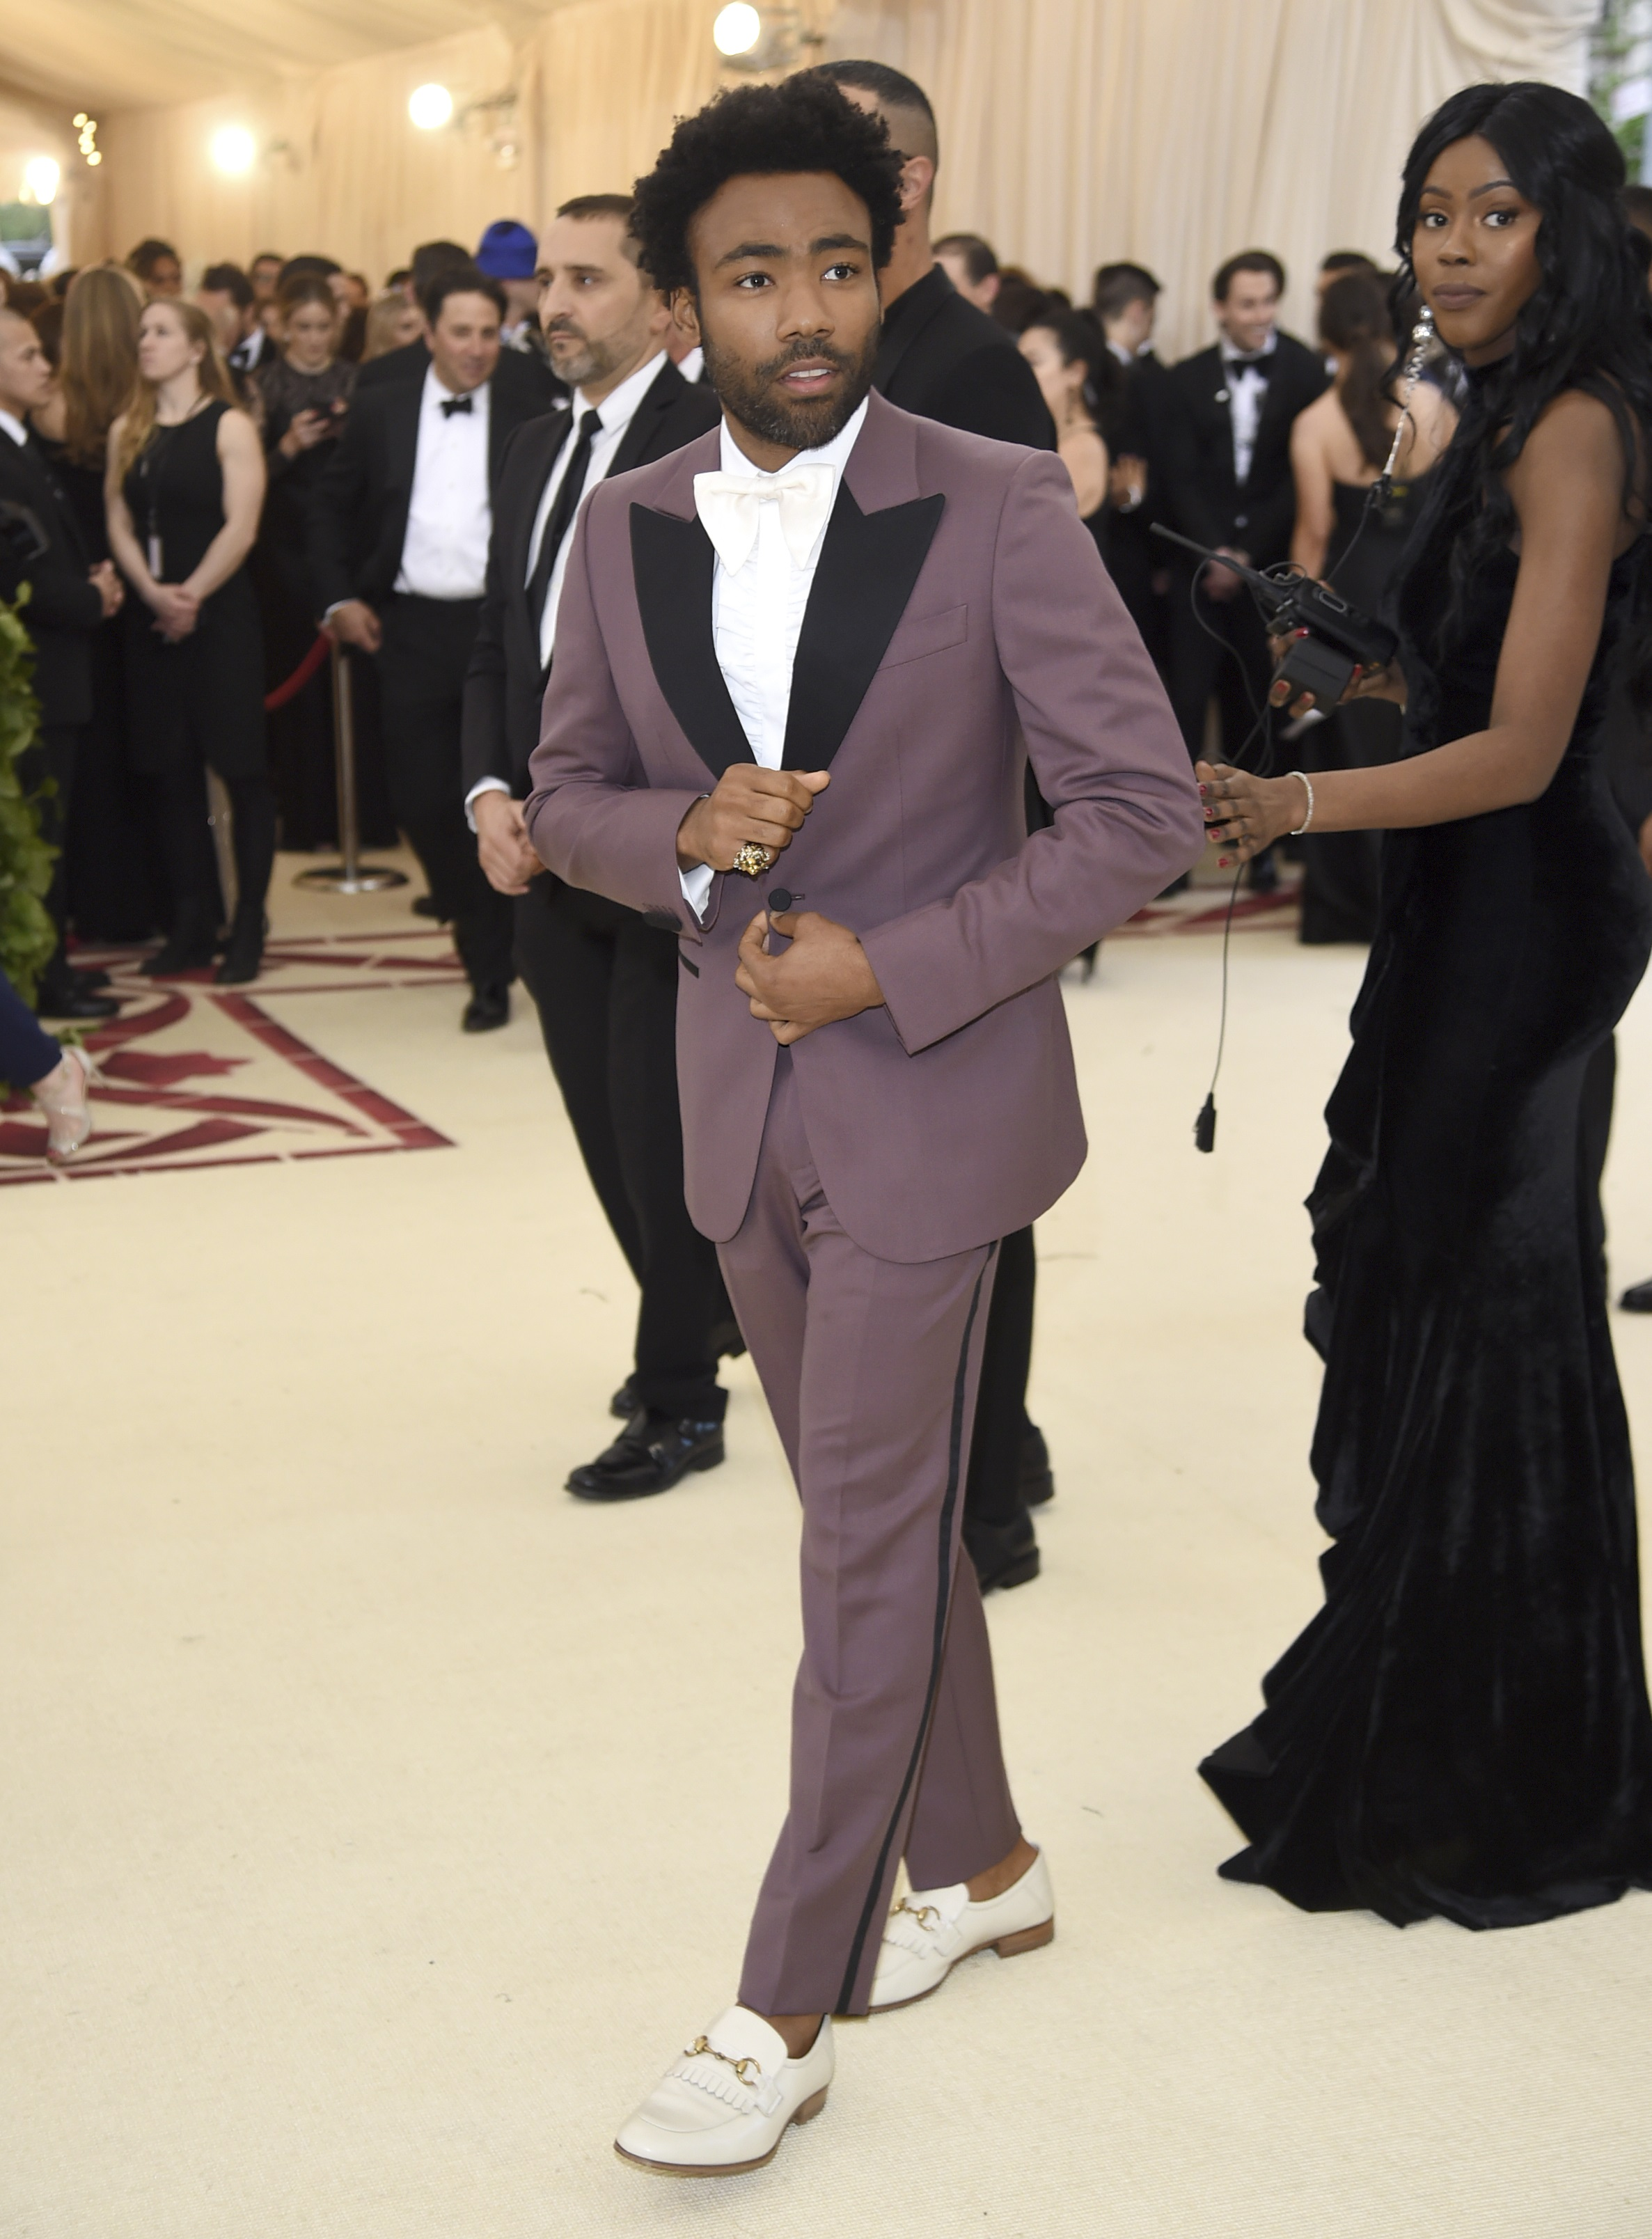 <div class='meta'><div class='origin-logo' data-origin='none'></div><span class='caption-text' data-credit='Evan Agostini/Invision/AP'>Childish Gambino (Photo by Evan Agostini/Invision/AP)</span></div>